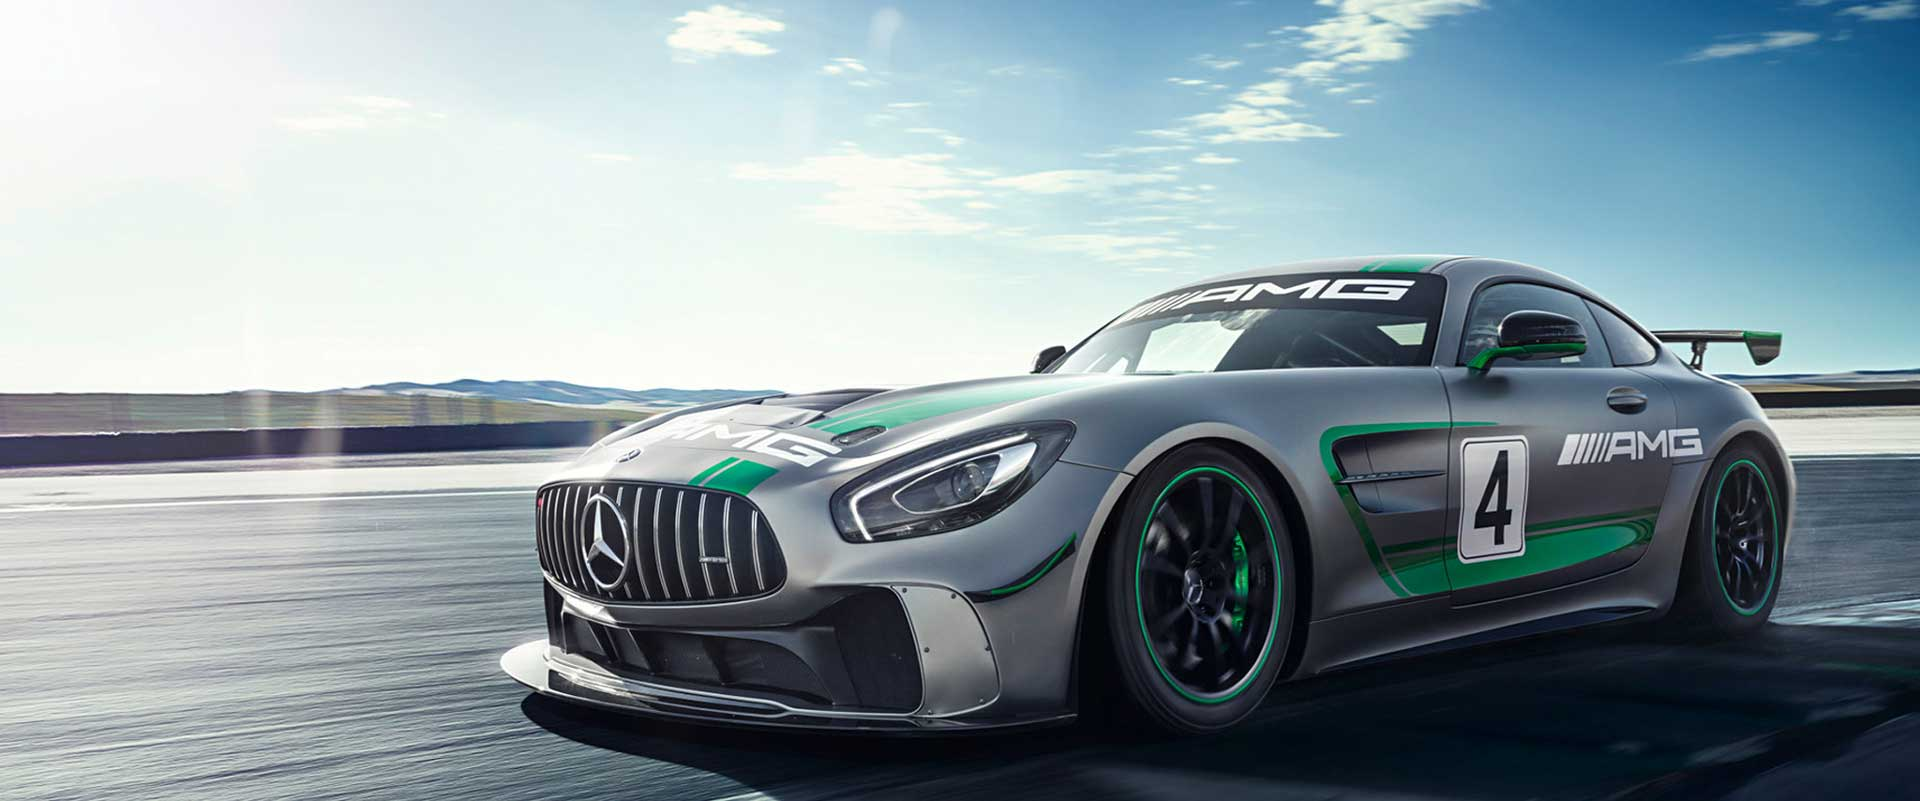 Race. Performance. Mercedes AMG GT4.